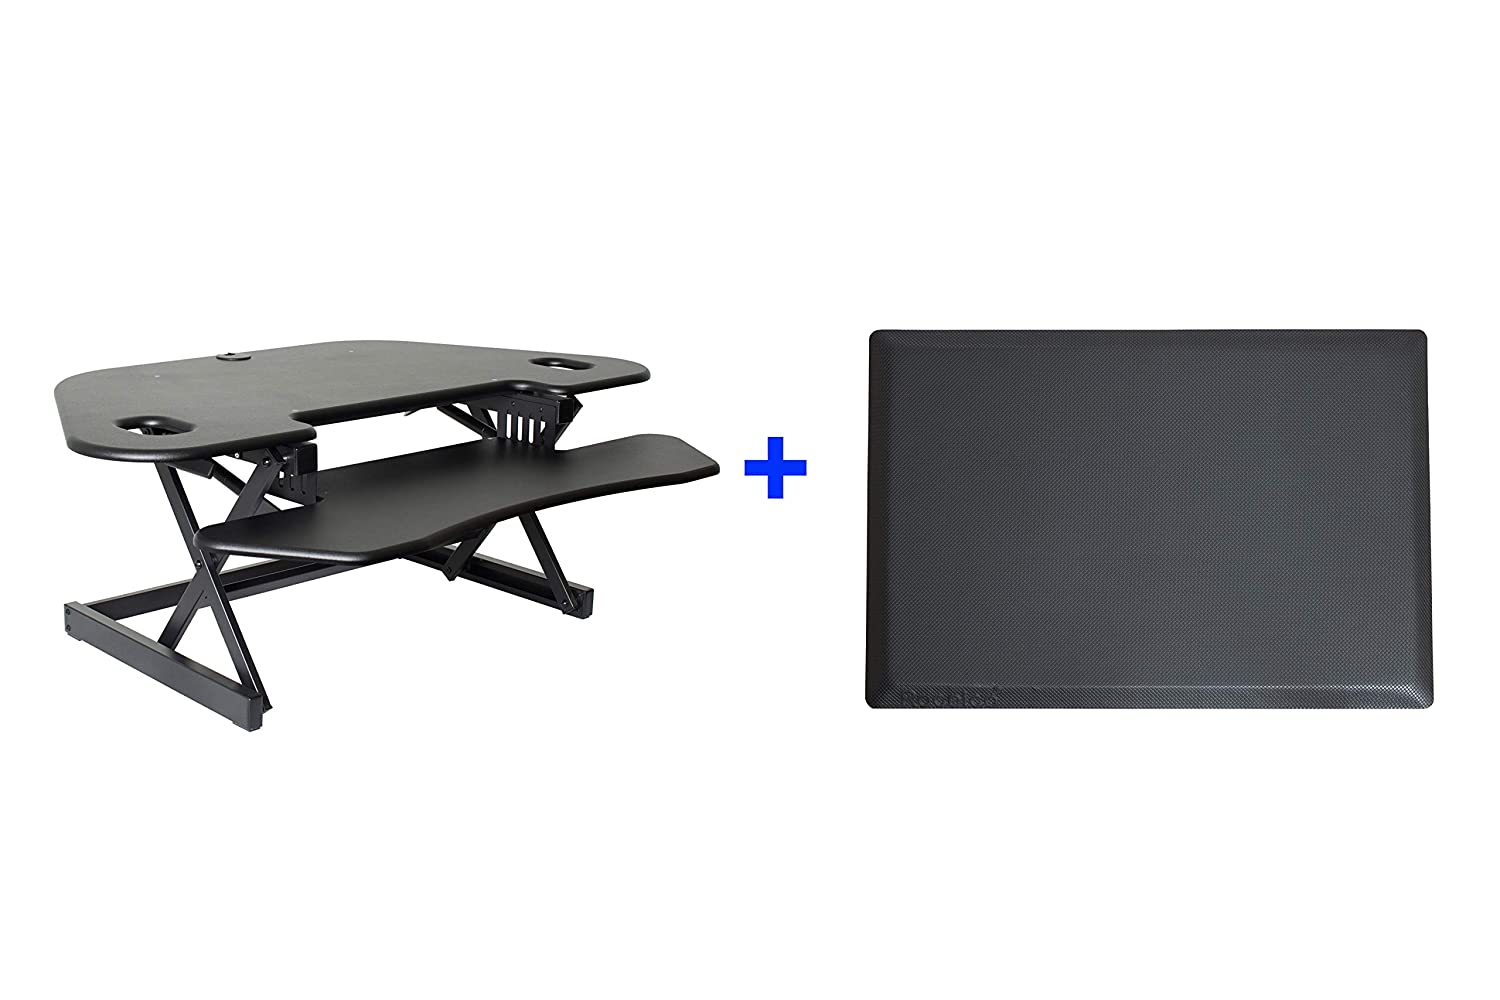 Rocelco 46 Height Adjustable Corner Standing Desk Converter Bundle Sit Stand Computer Workstation Riser Dual Monitor Keyboard Tray Gas Spring Assist Black with Anti Fatigue Mat CADRB-46-MAFM